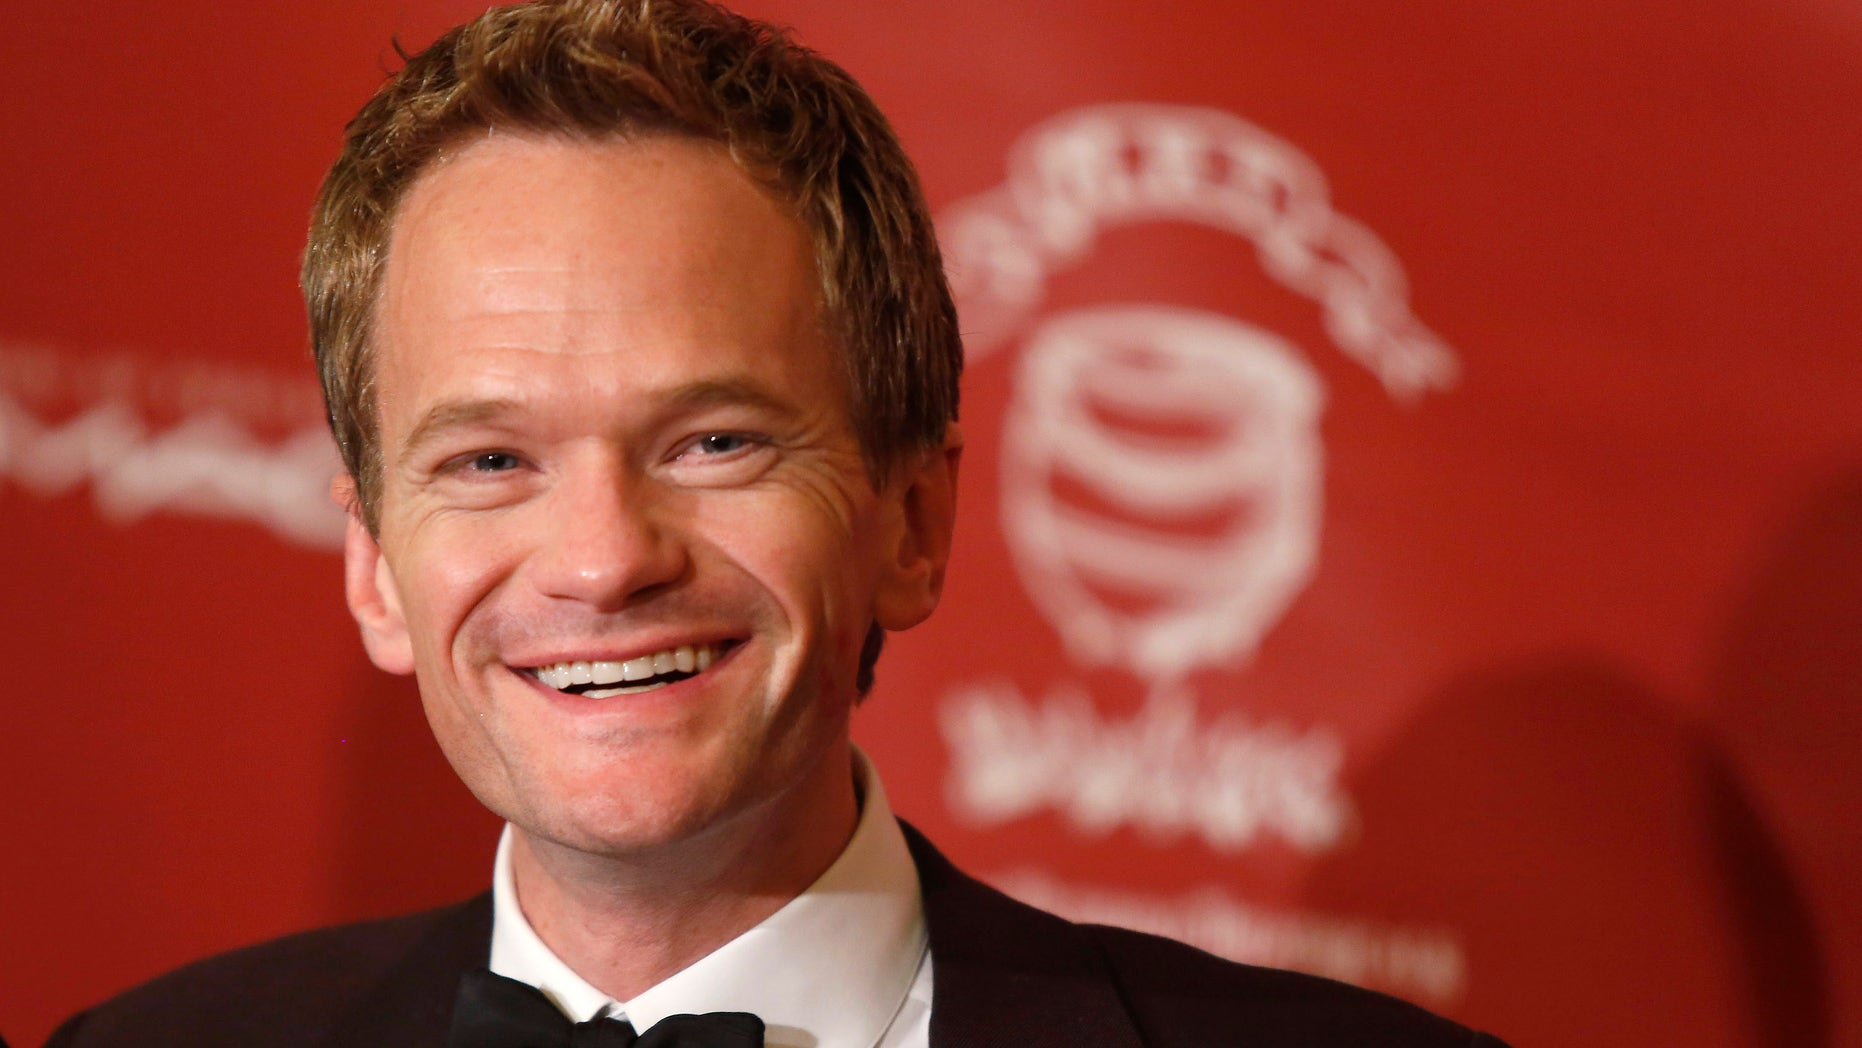 """February 7, 2014. Actor Neil Patrick Harris meets the media after he was honored as Hasty Pudding Theatricals """" Man of the Year"""" during a roast at Harvard University in Cambridge, Massachusetts."""